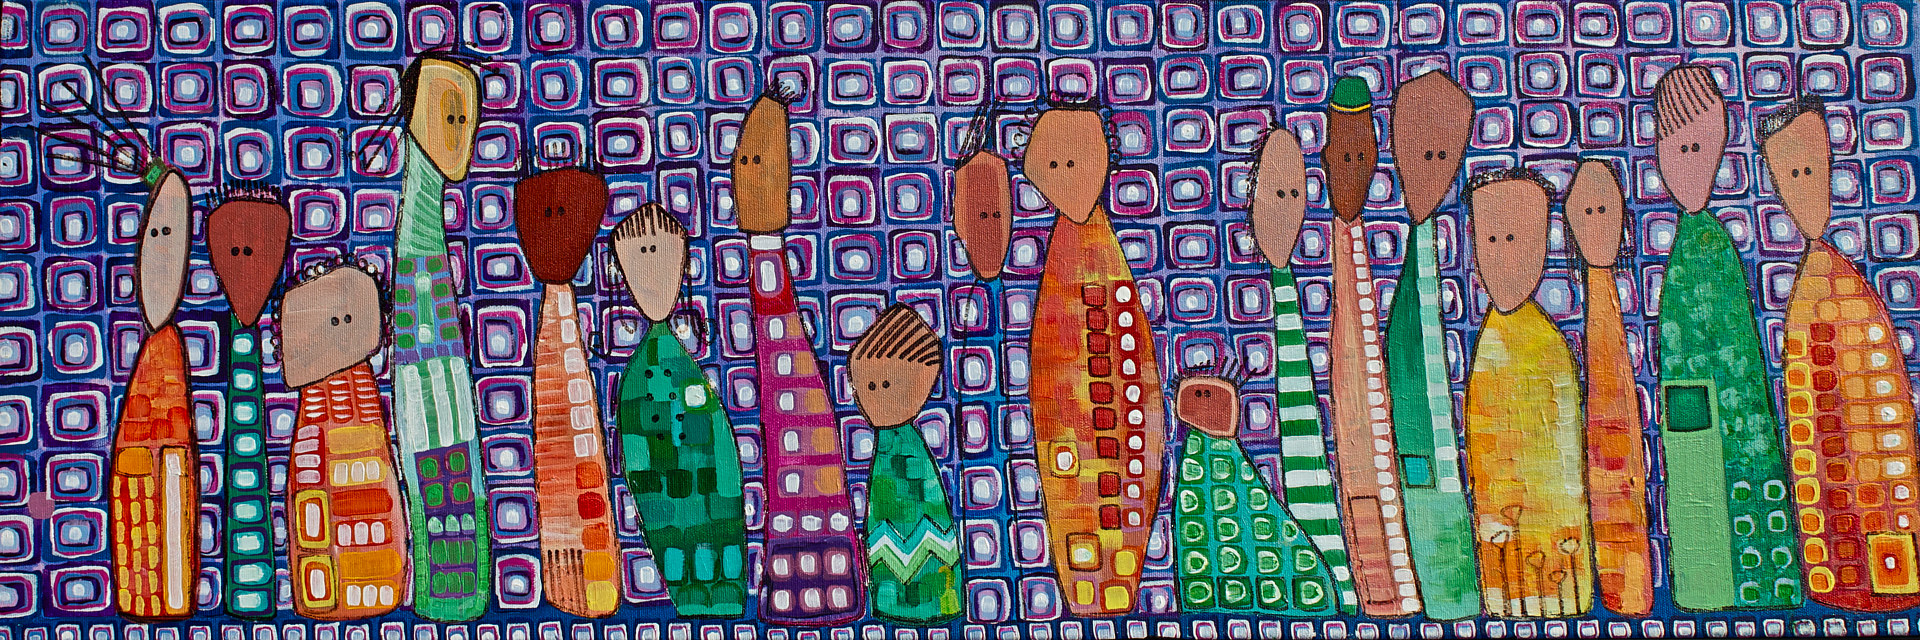 Acrylic painting Diversity by Donna Howard